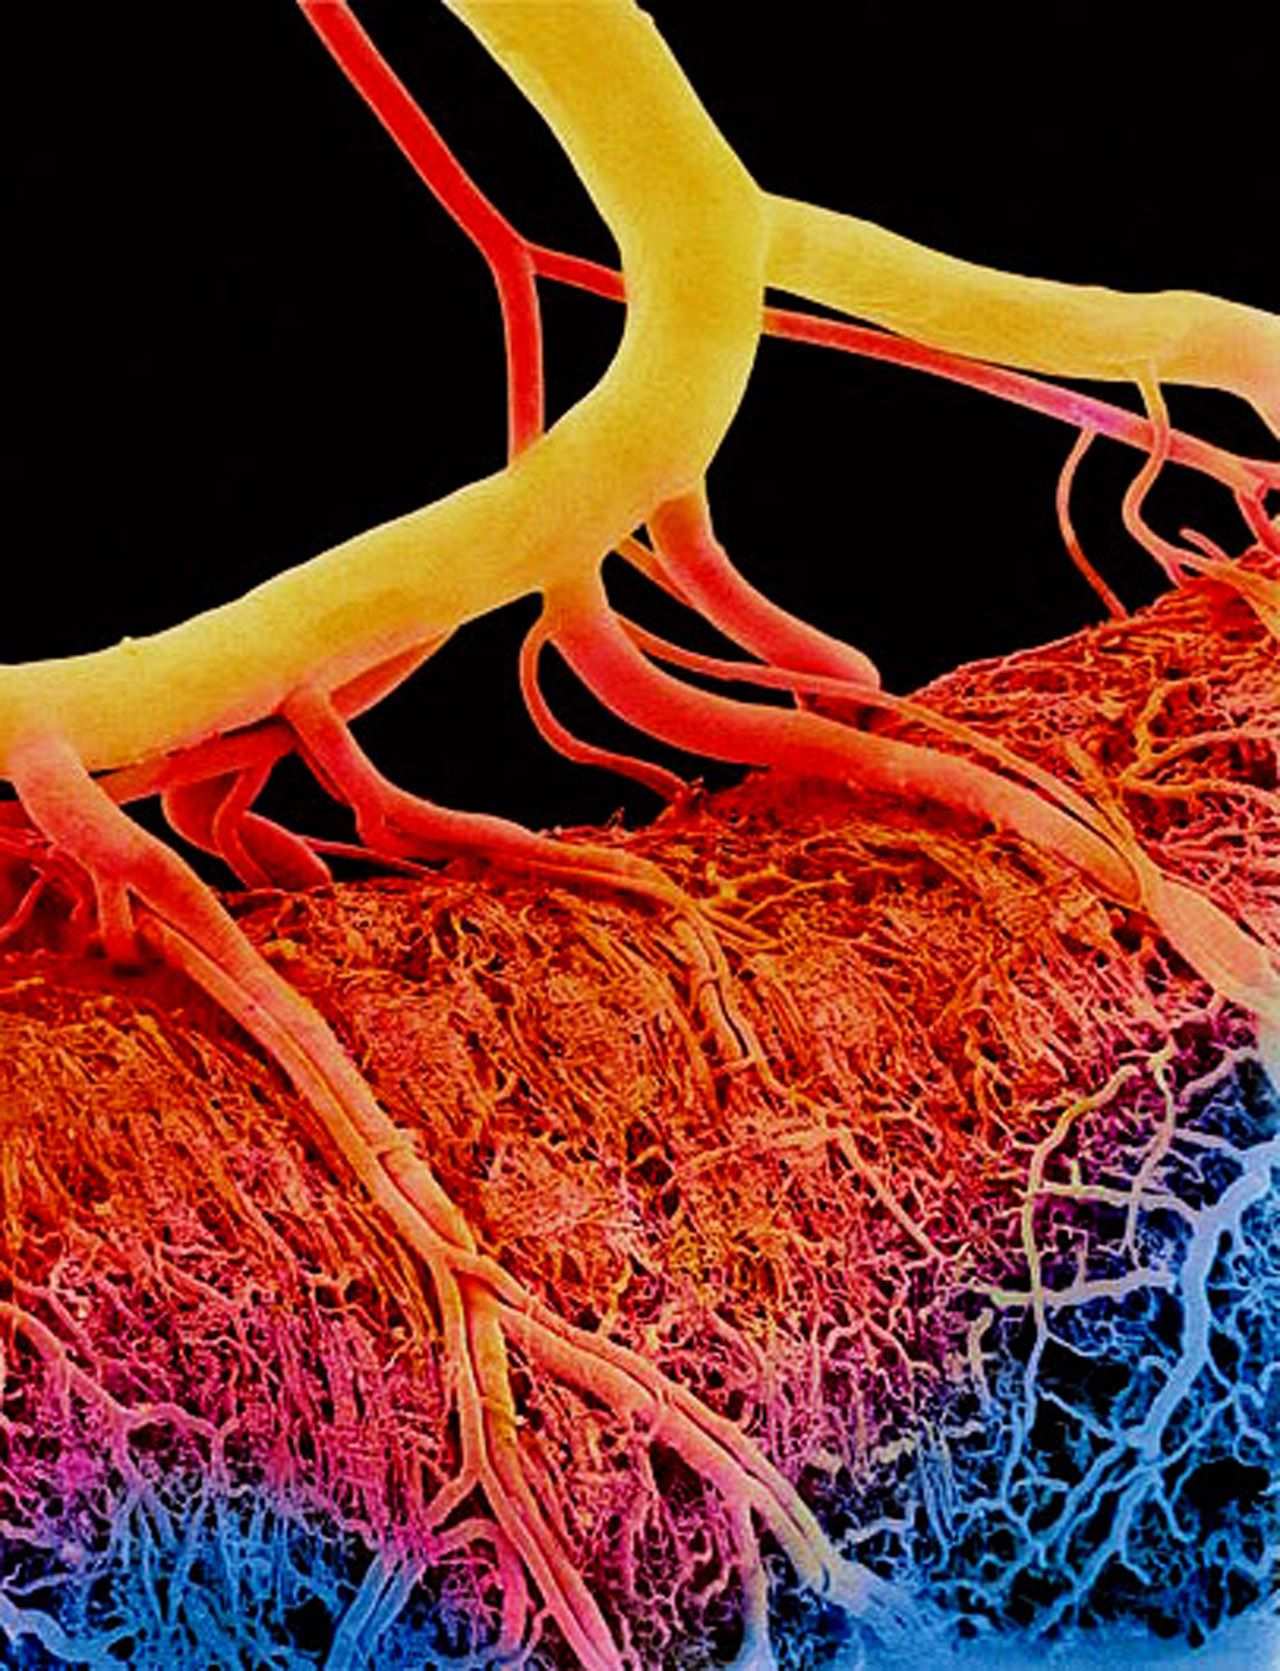 Blood Vessels Look Like Tree Roots Destroying The World